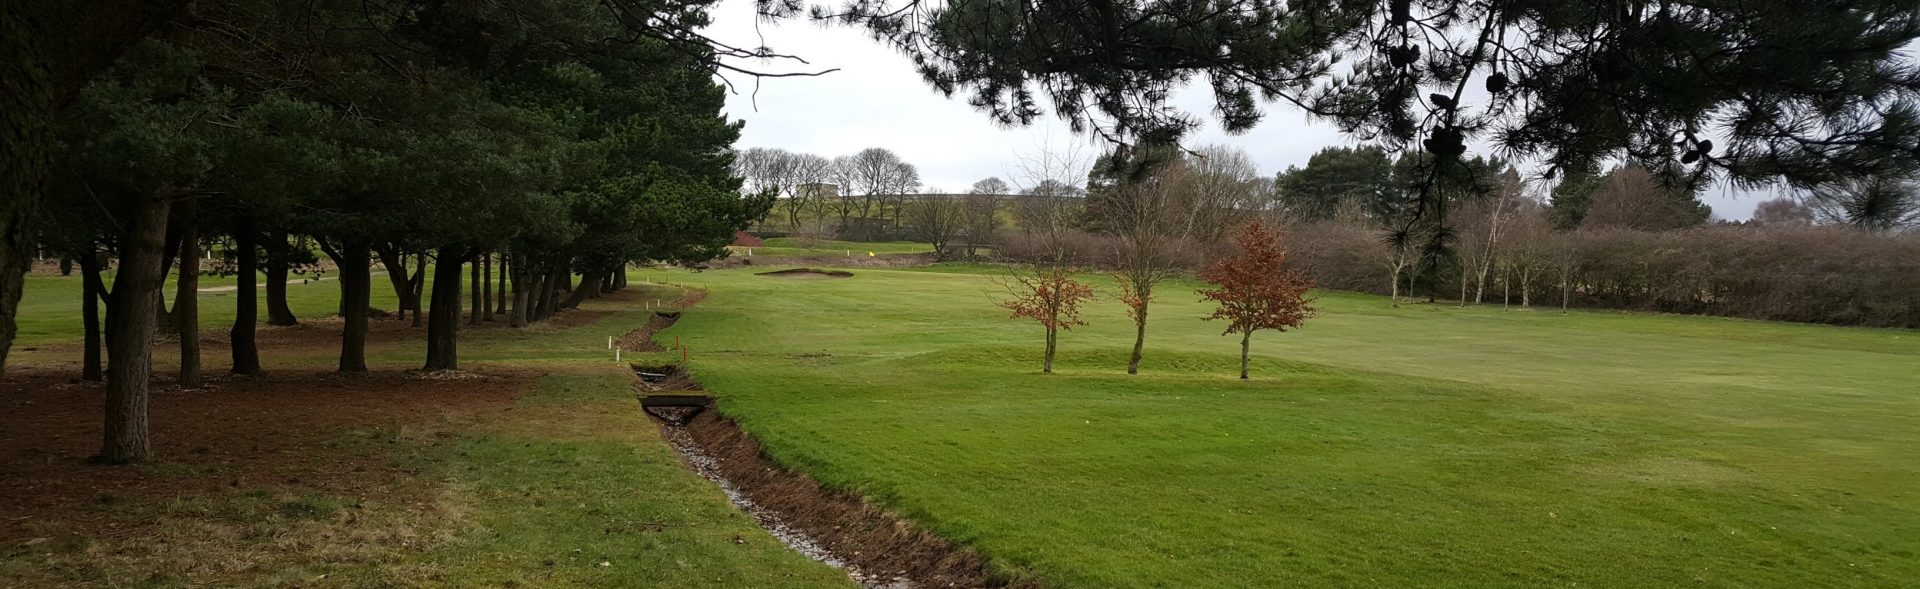 The 17th Fairway at West Bradford Golf Club.